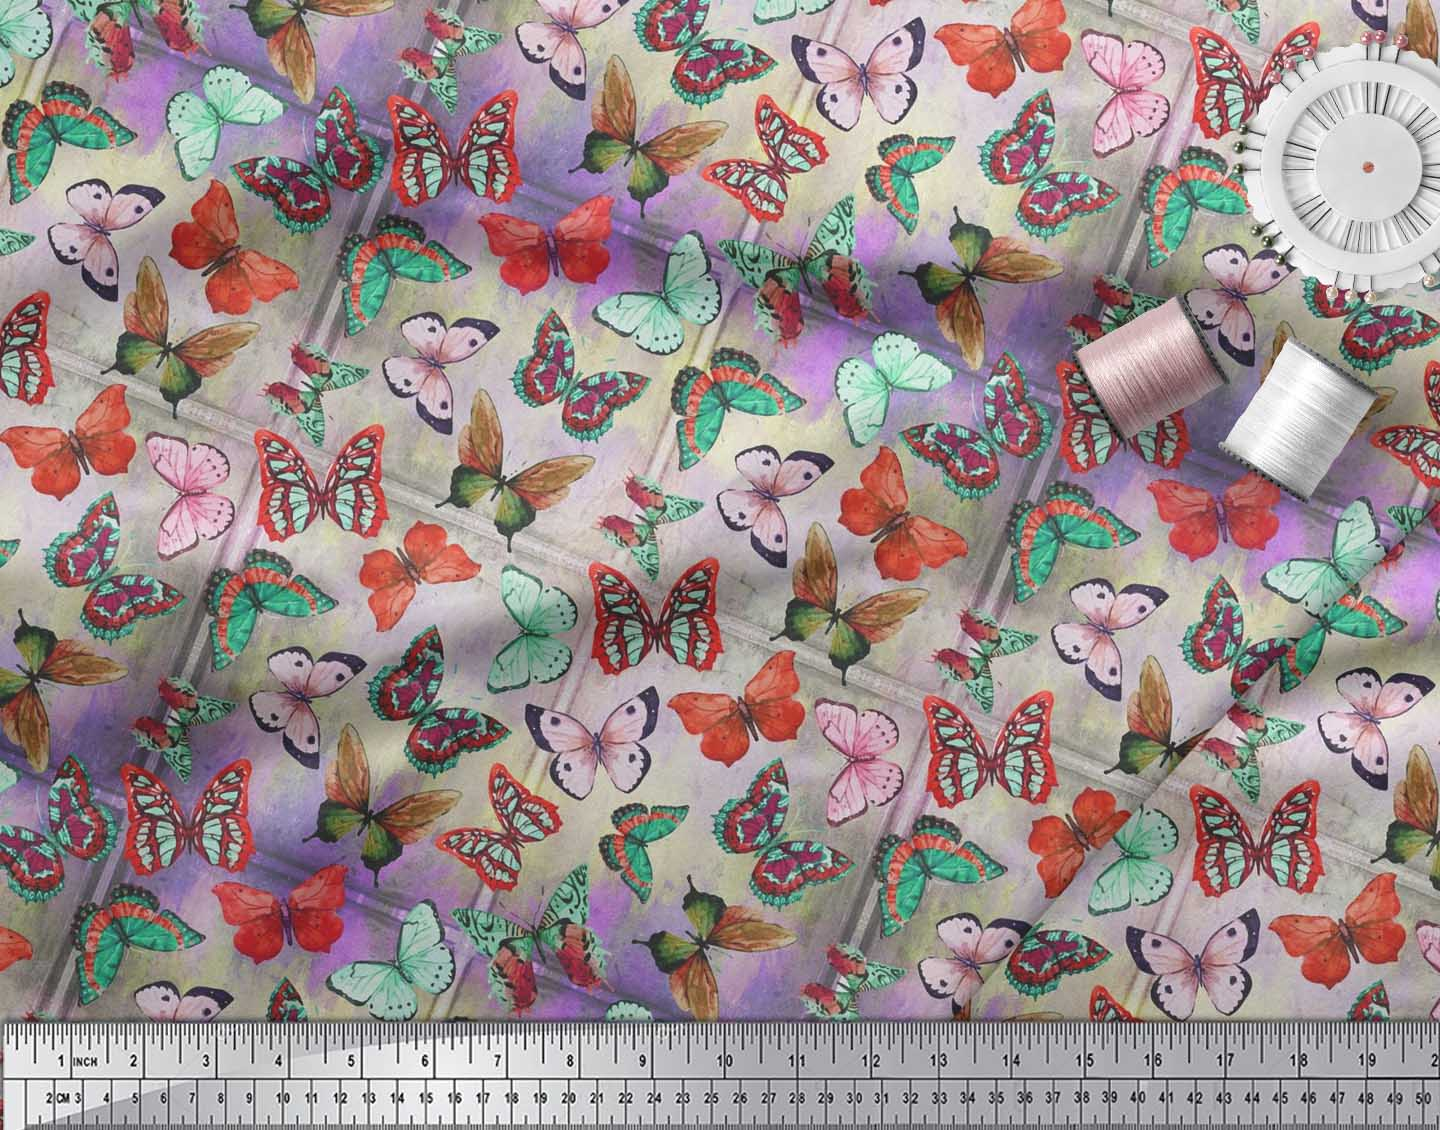 Soimoi-Cotton-Poplin-Fabric-Colorful-Butterfly-Printed-Fabric-1-Guo thumbnail 3